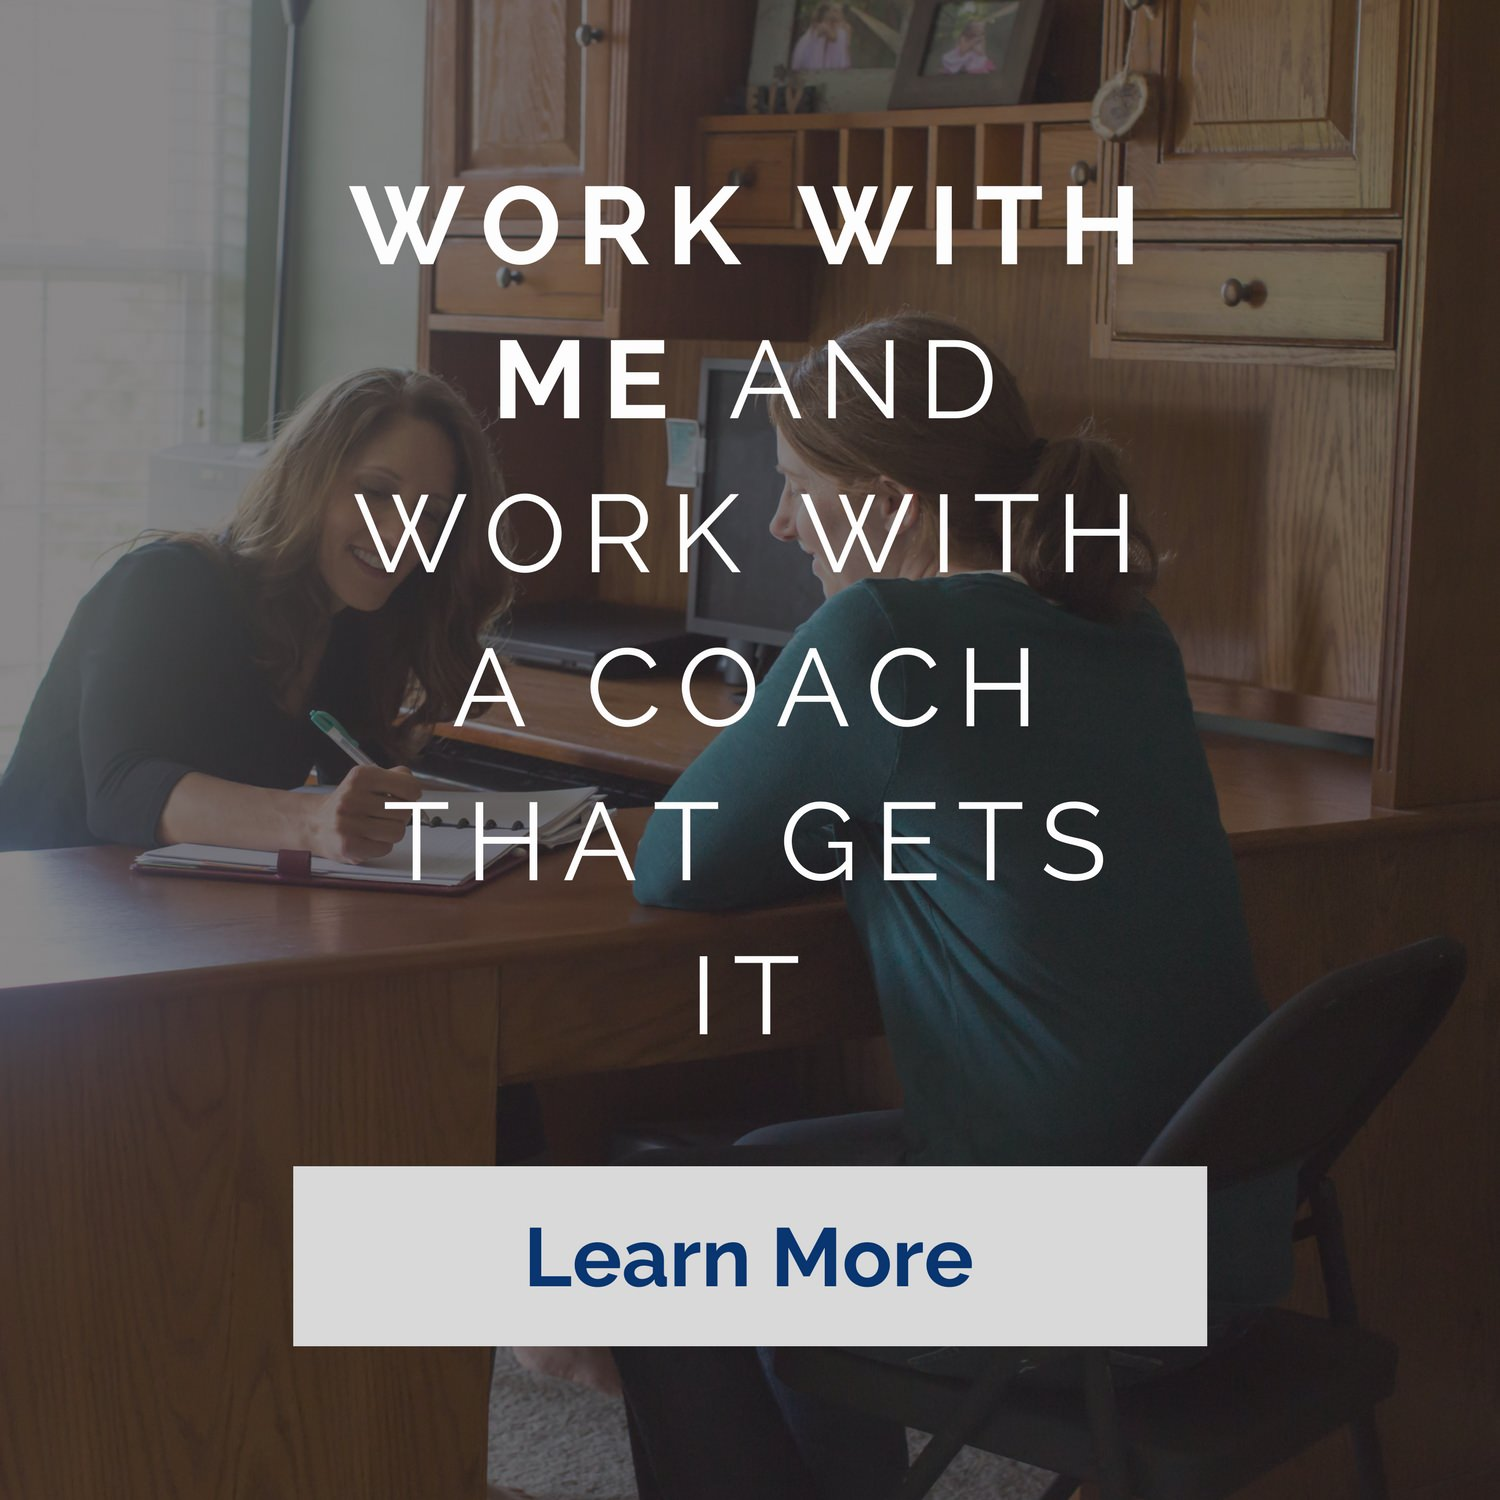 When you work with me, you work with a coach that gets it. I provide health and wellness coaching - both in person and online.